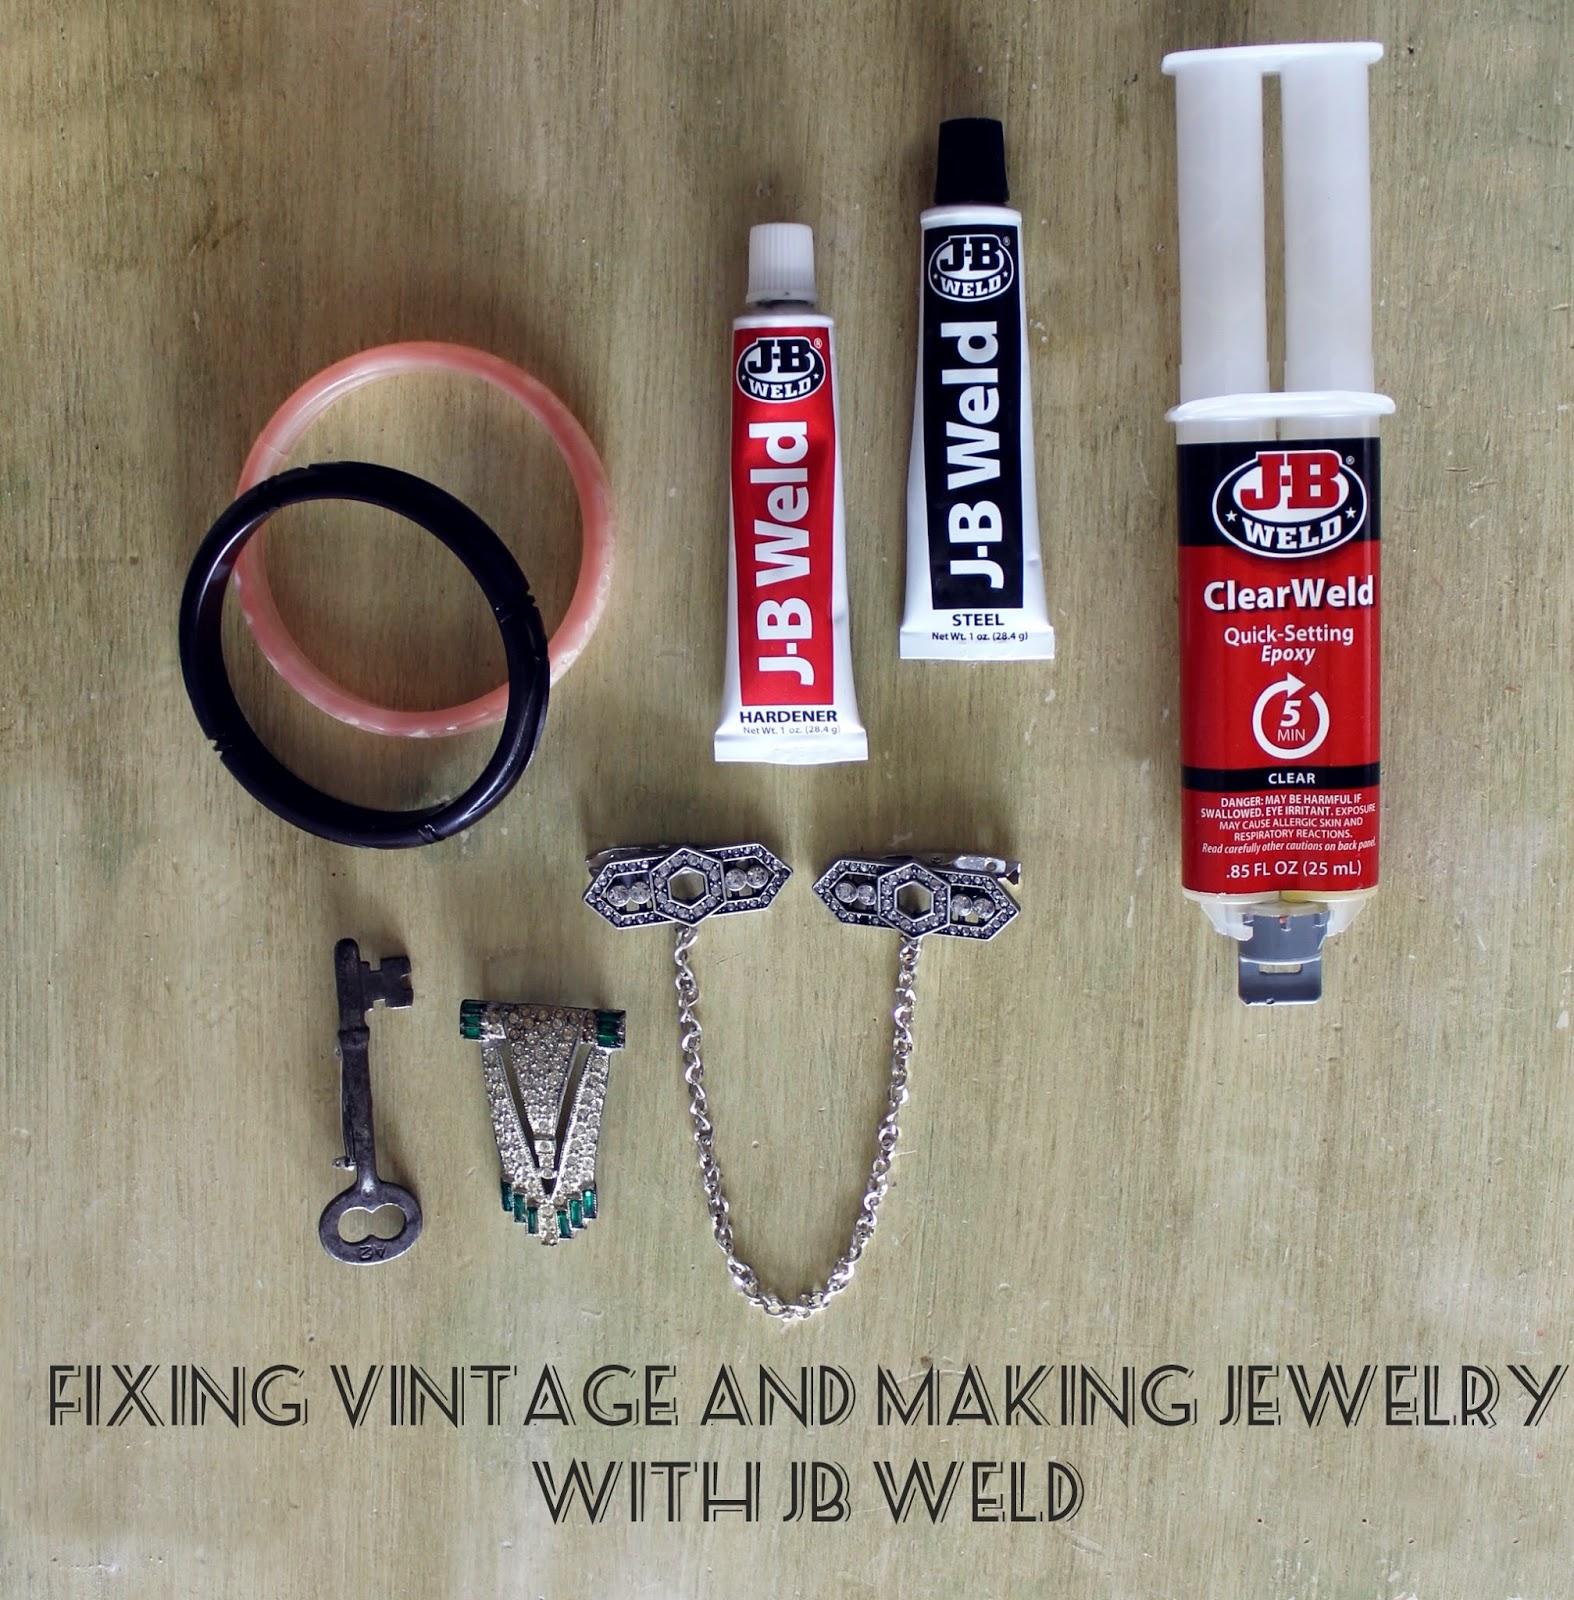 Fixing Vintage And Making Jewelry With Jb Weld Va Voom Vintage